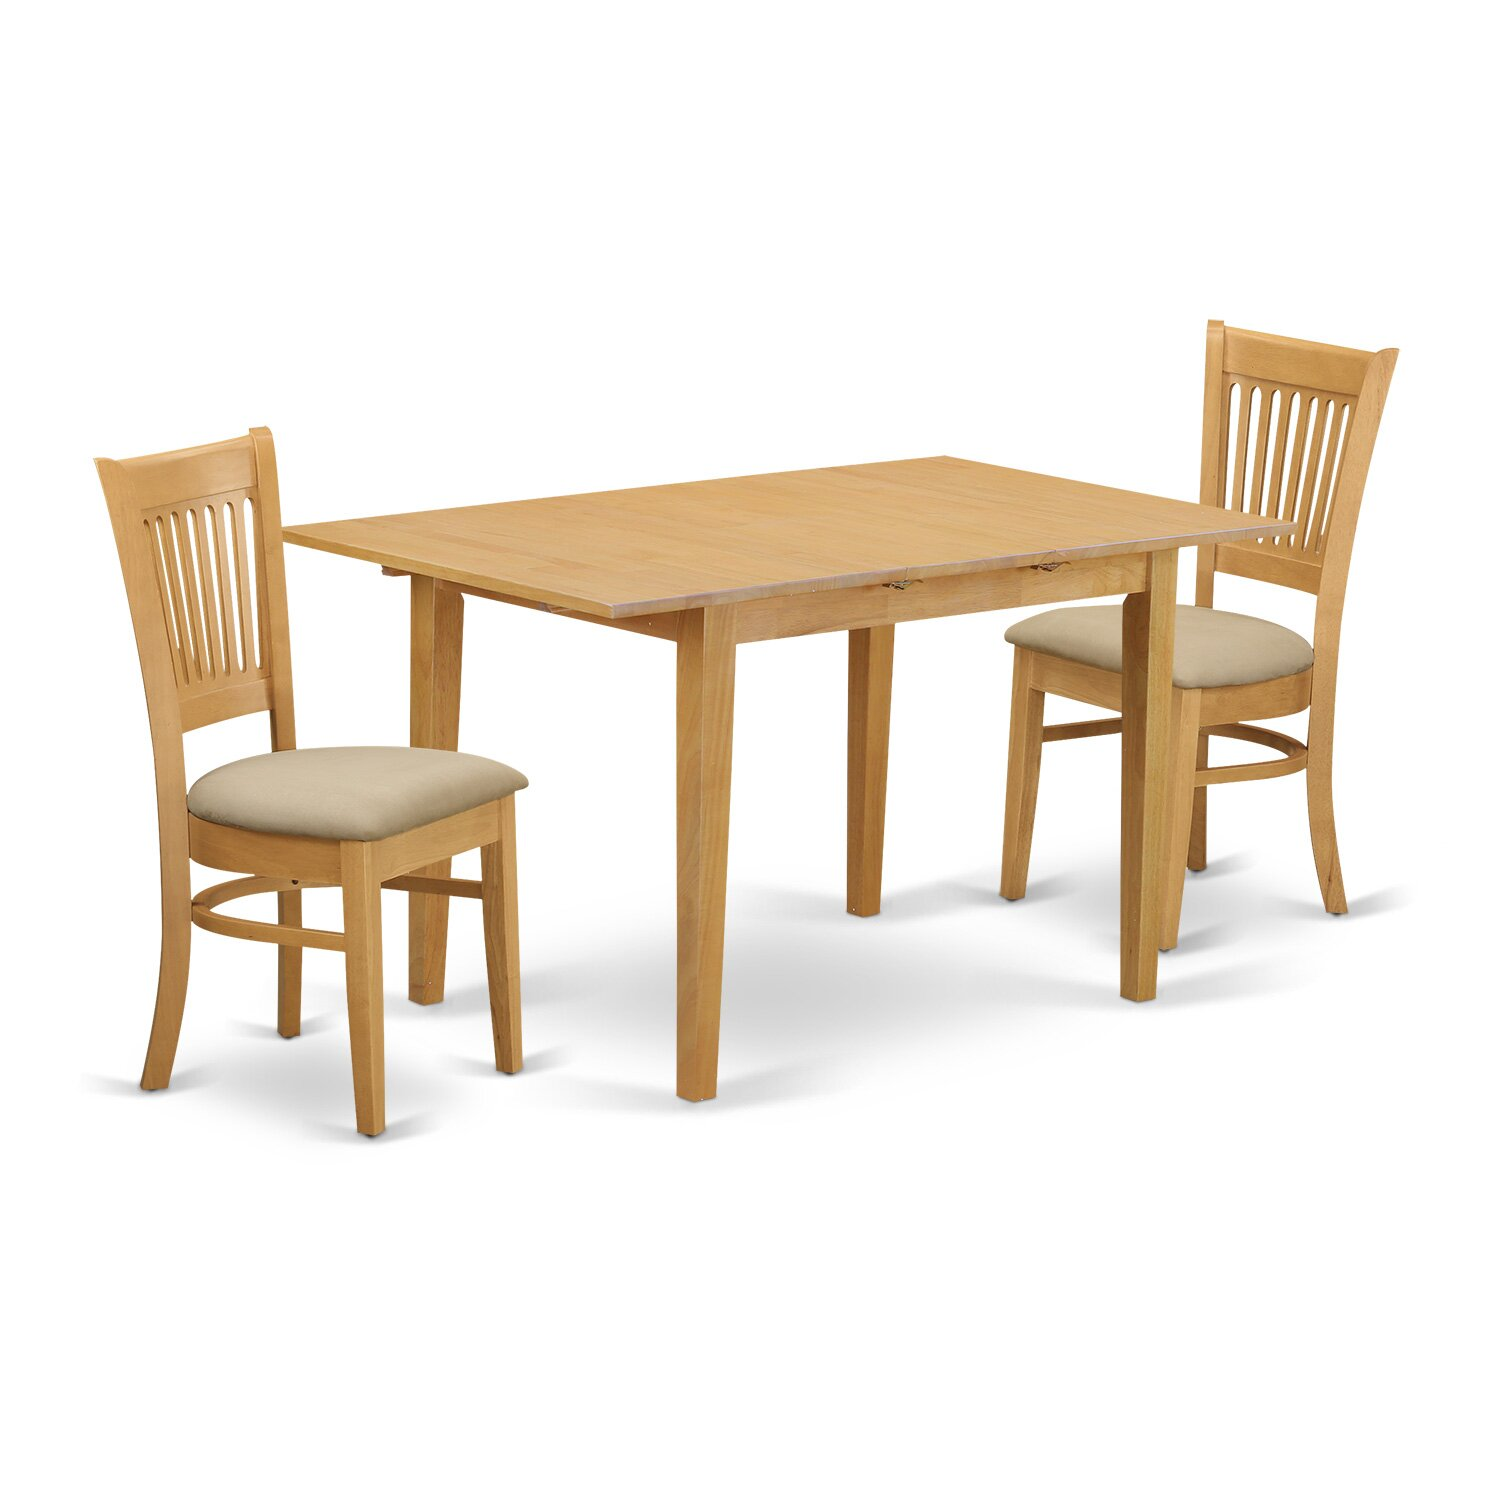 Norfolk 3 piece dining set wayfair for 2 piece dining room set